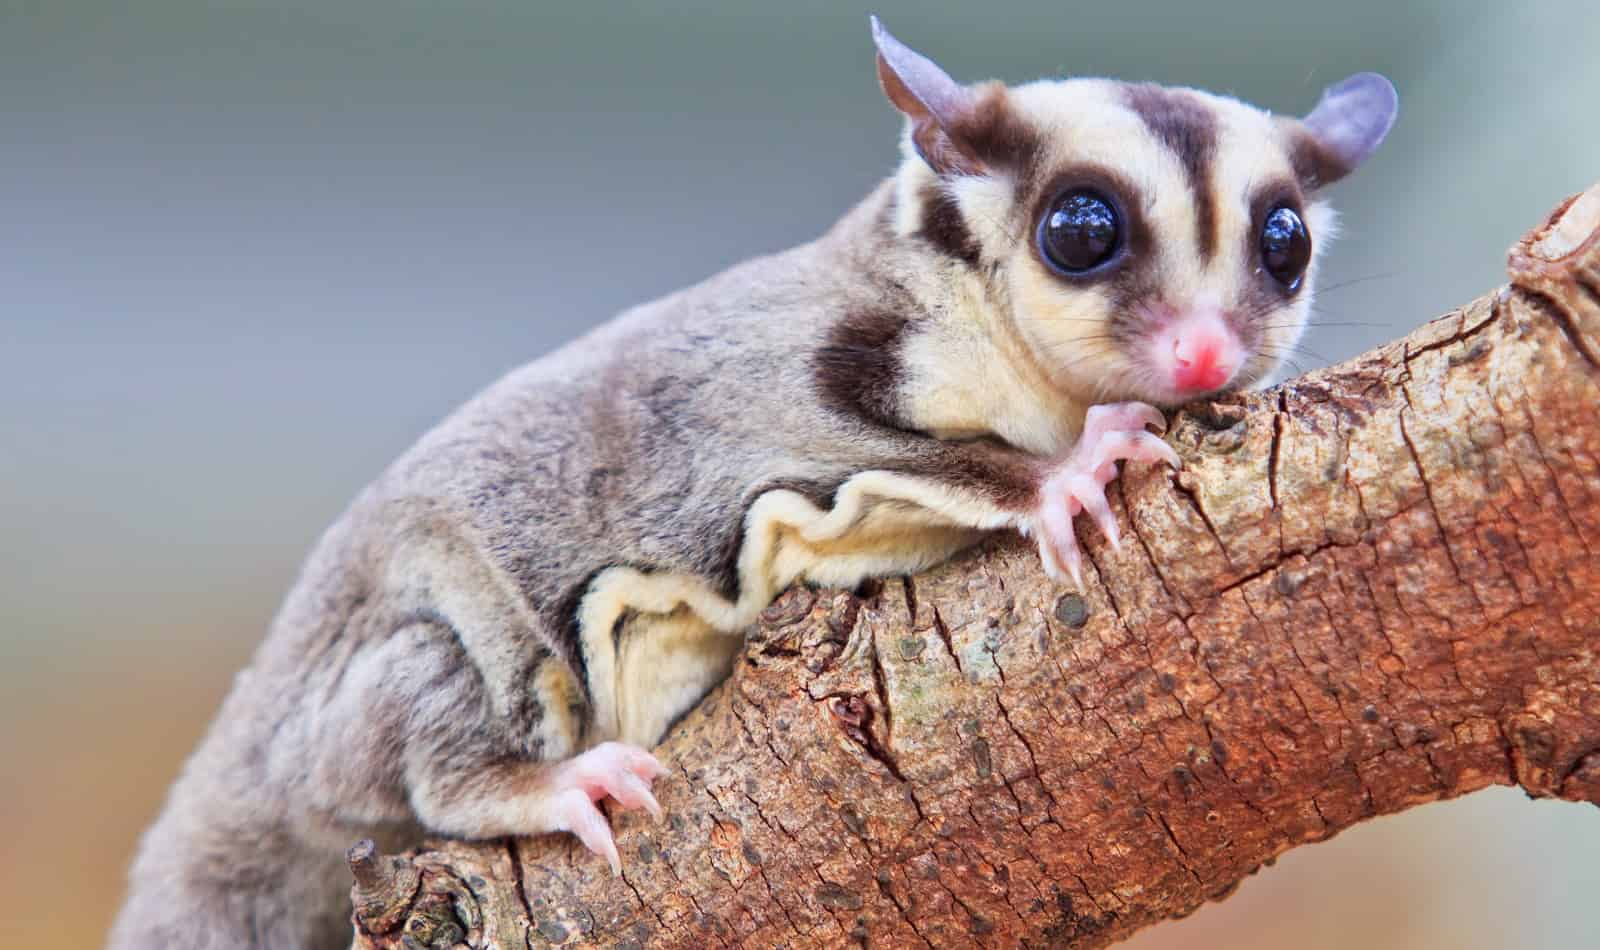 Curious about the different types of sugar glider breeds and colors? Check out our guide to the 17 variations for these unique exotic marsupials!